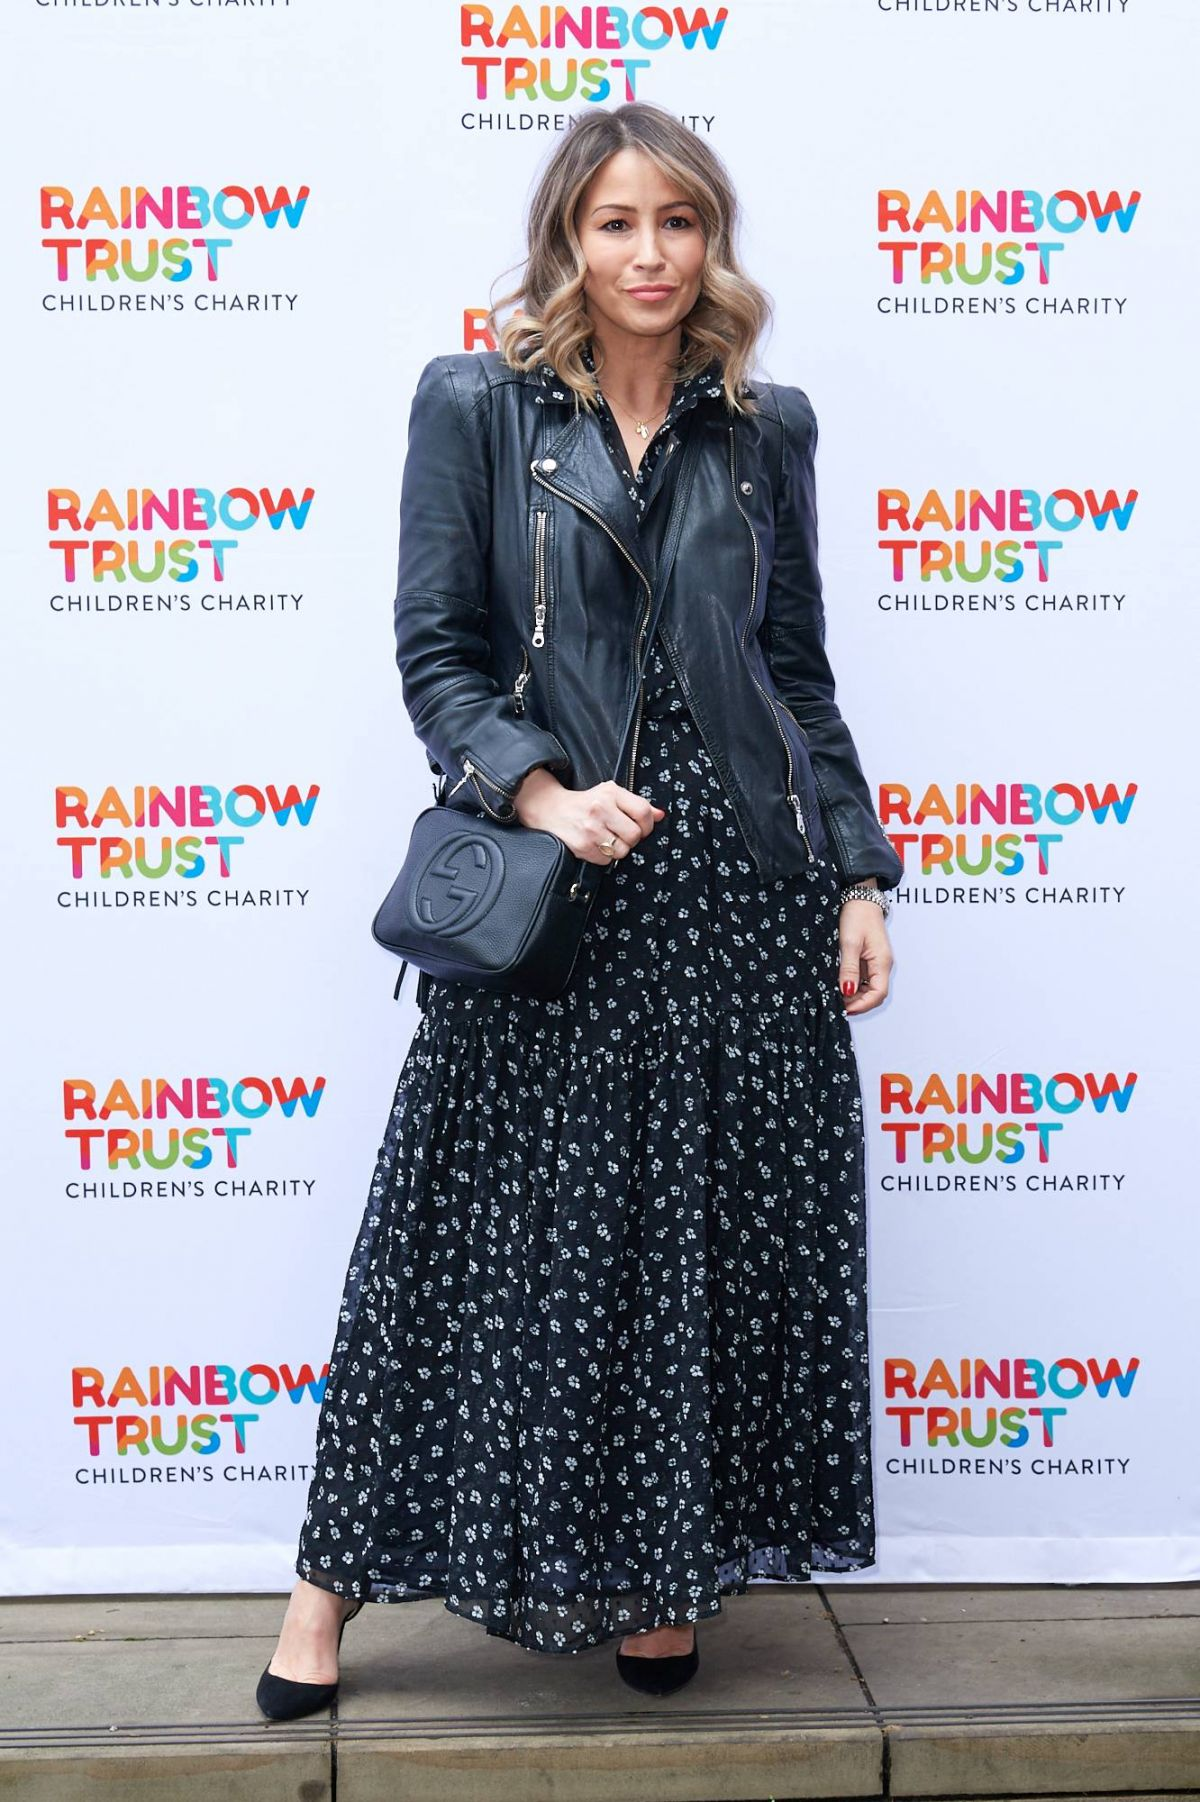 RACHEL STEVENS At Rainbow Trust Fundraiser In London 03182019 HawtCelebs